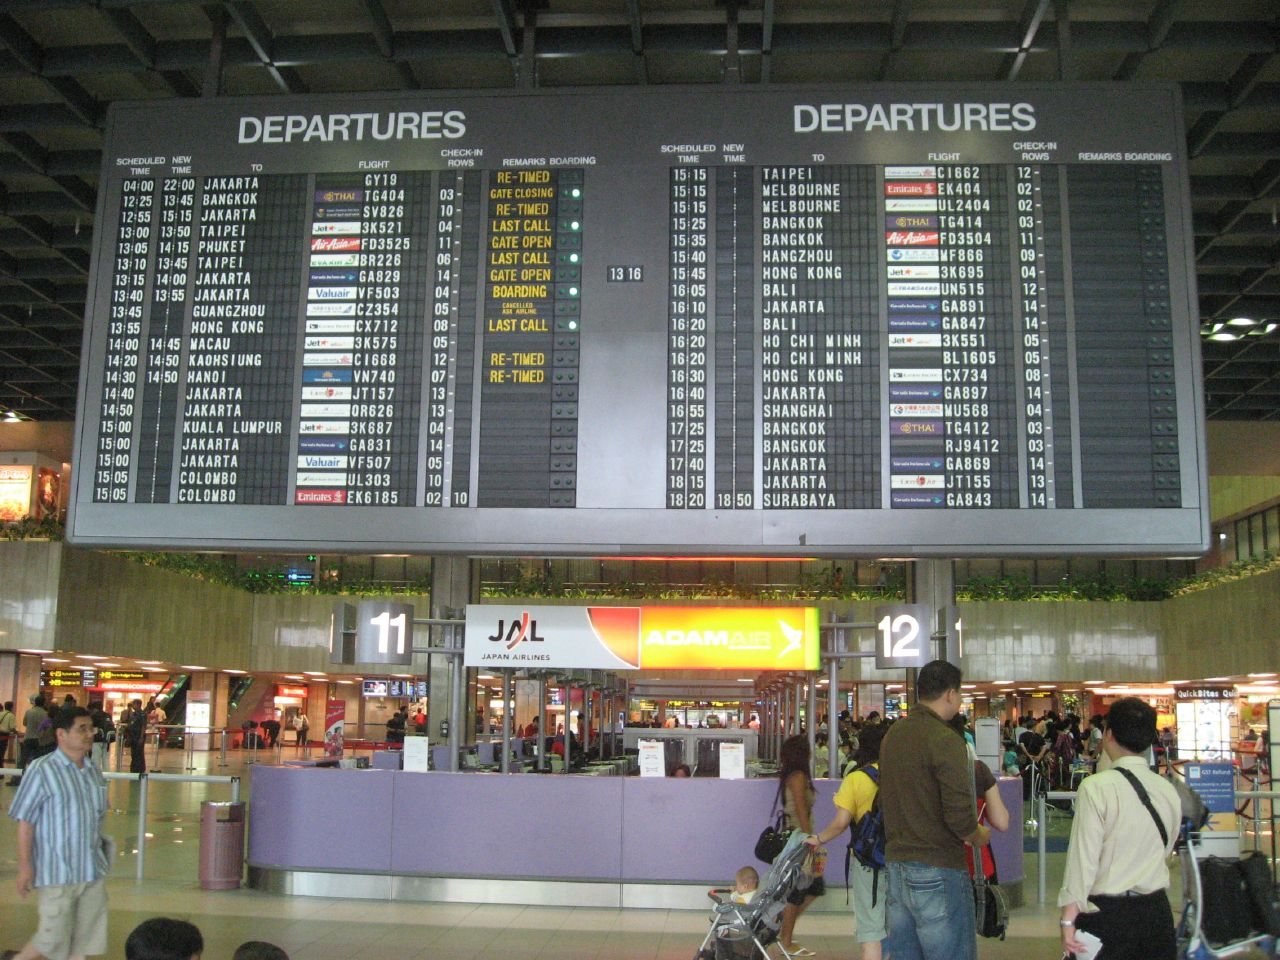 photo essay airports airplanes departure board at singapore changi international airport